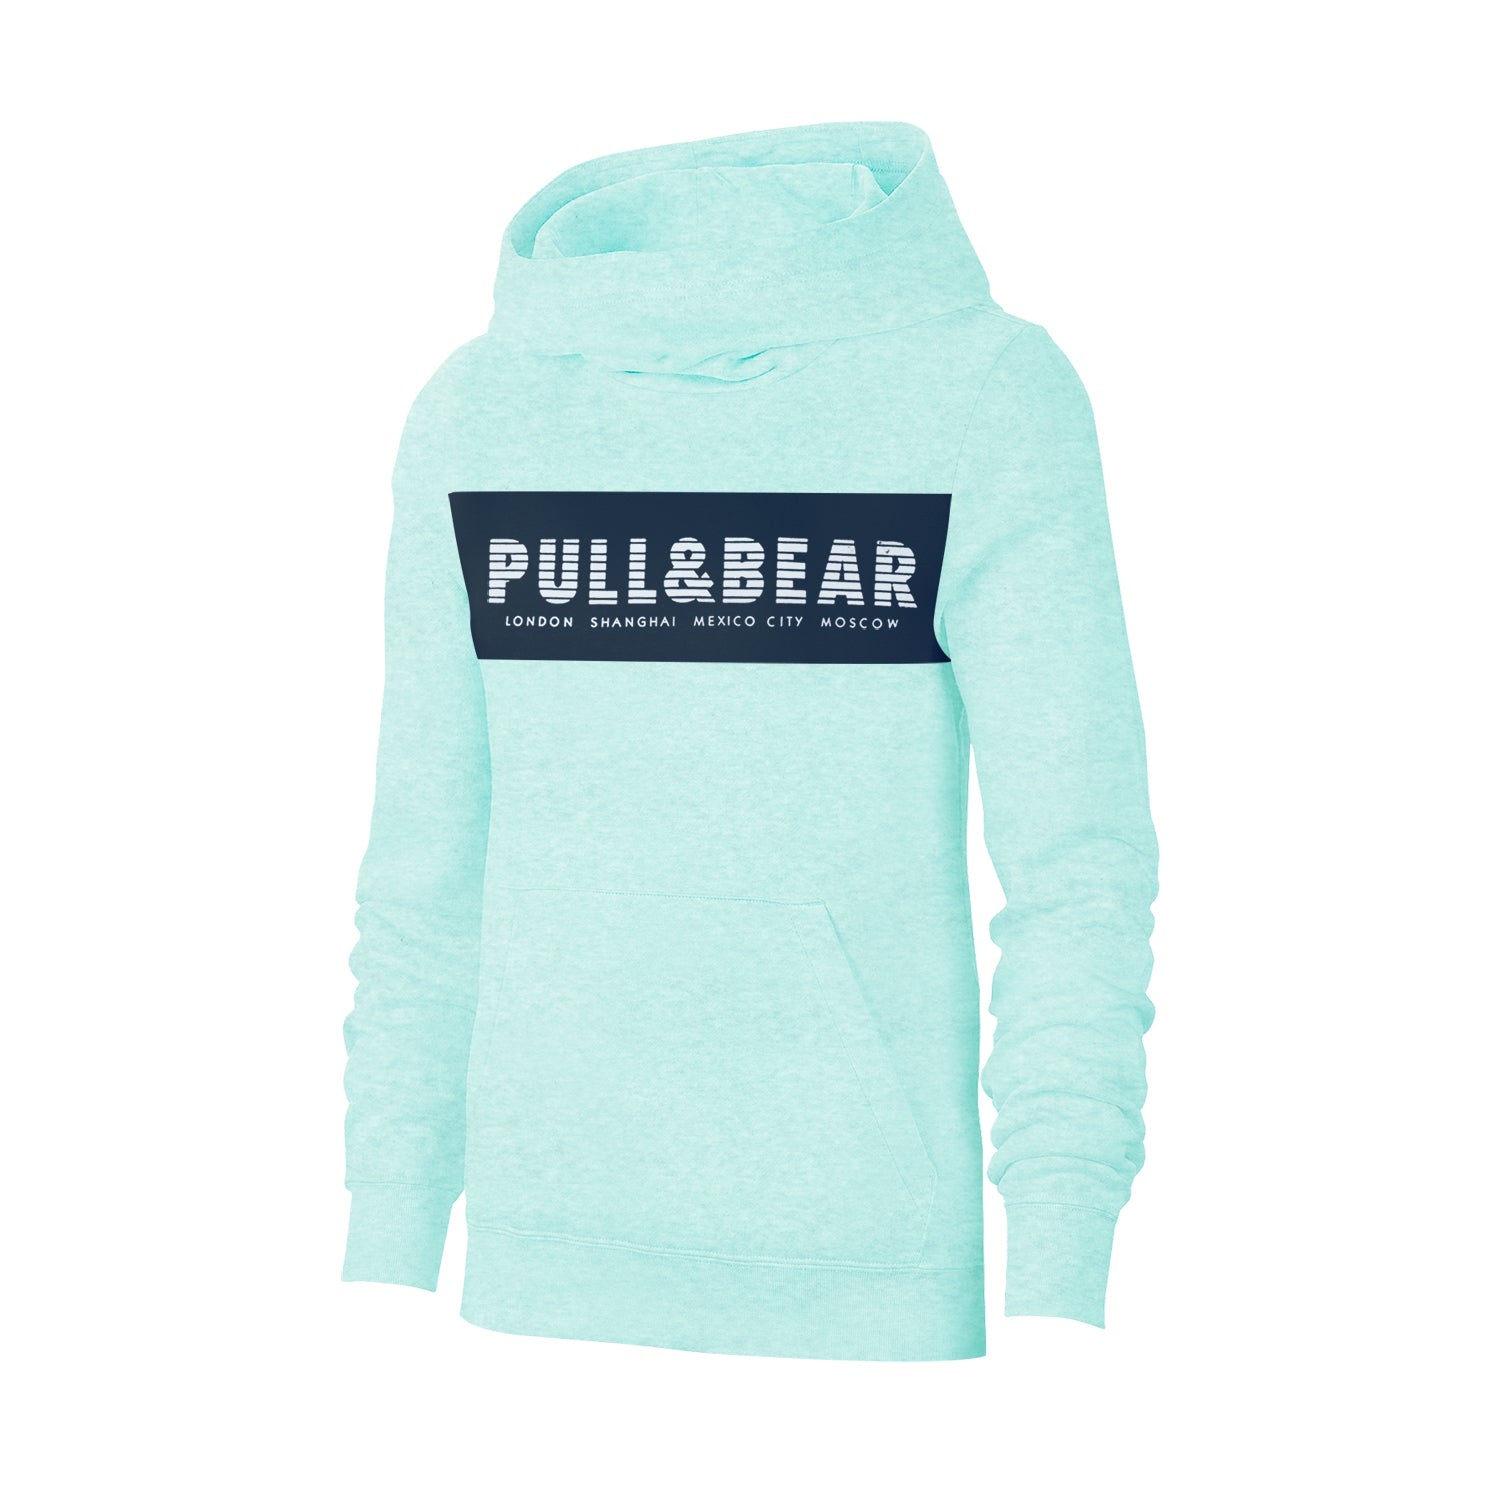 Pull & Bear Fleece Pullover Hoodie For Men-Green Melange With Navy Panel-BE13428